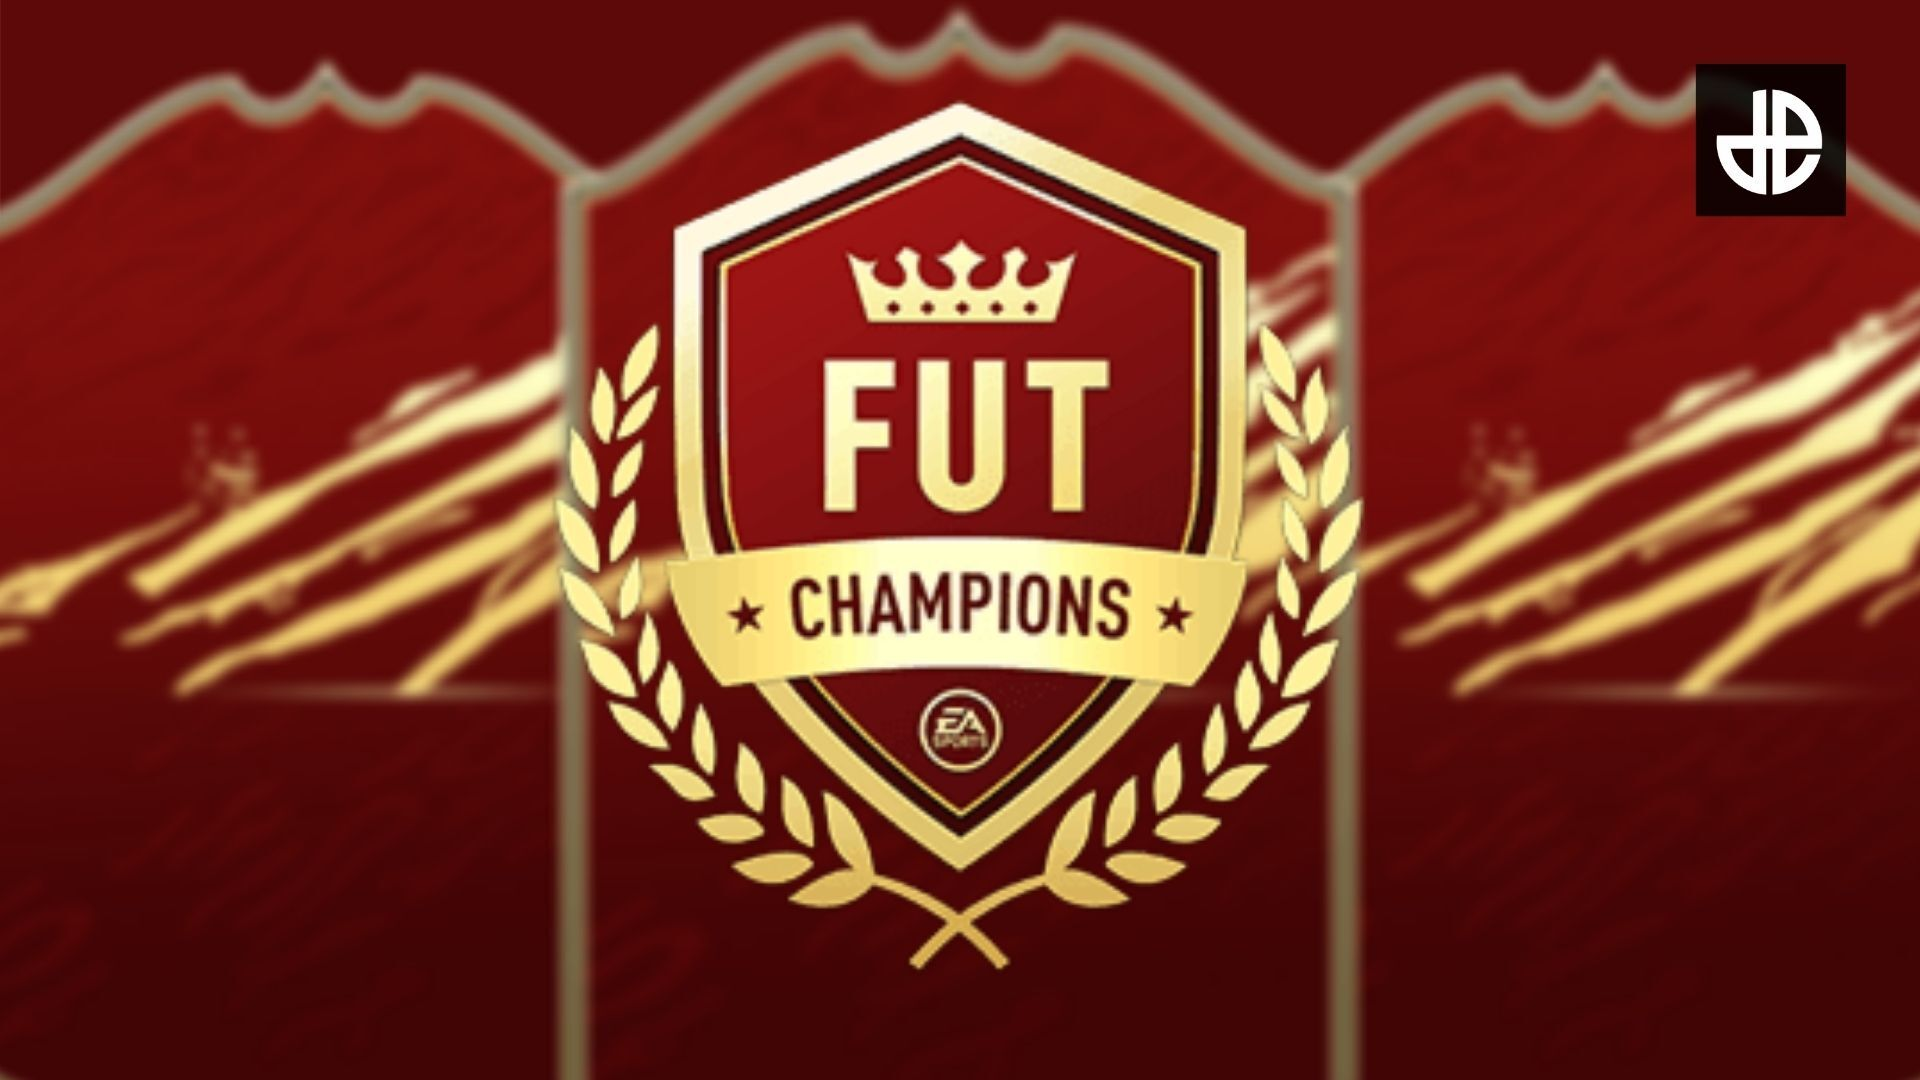 FUT Champs issues